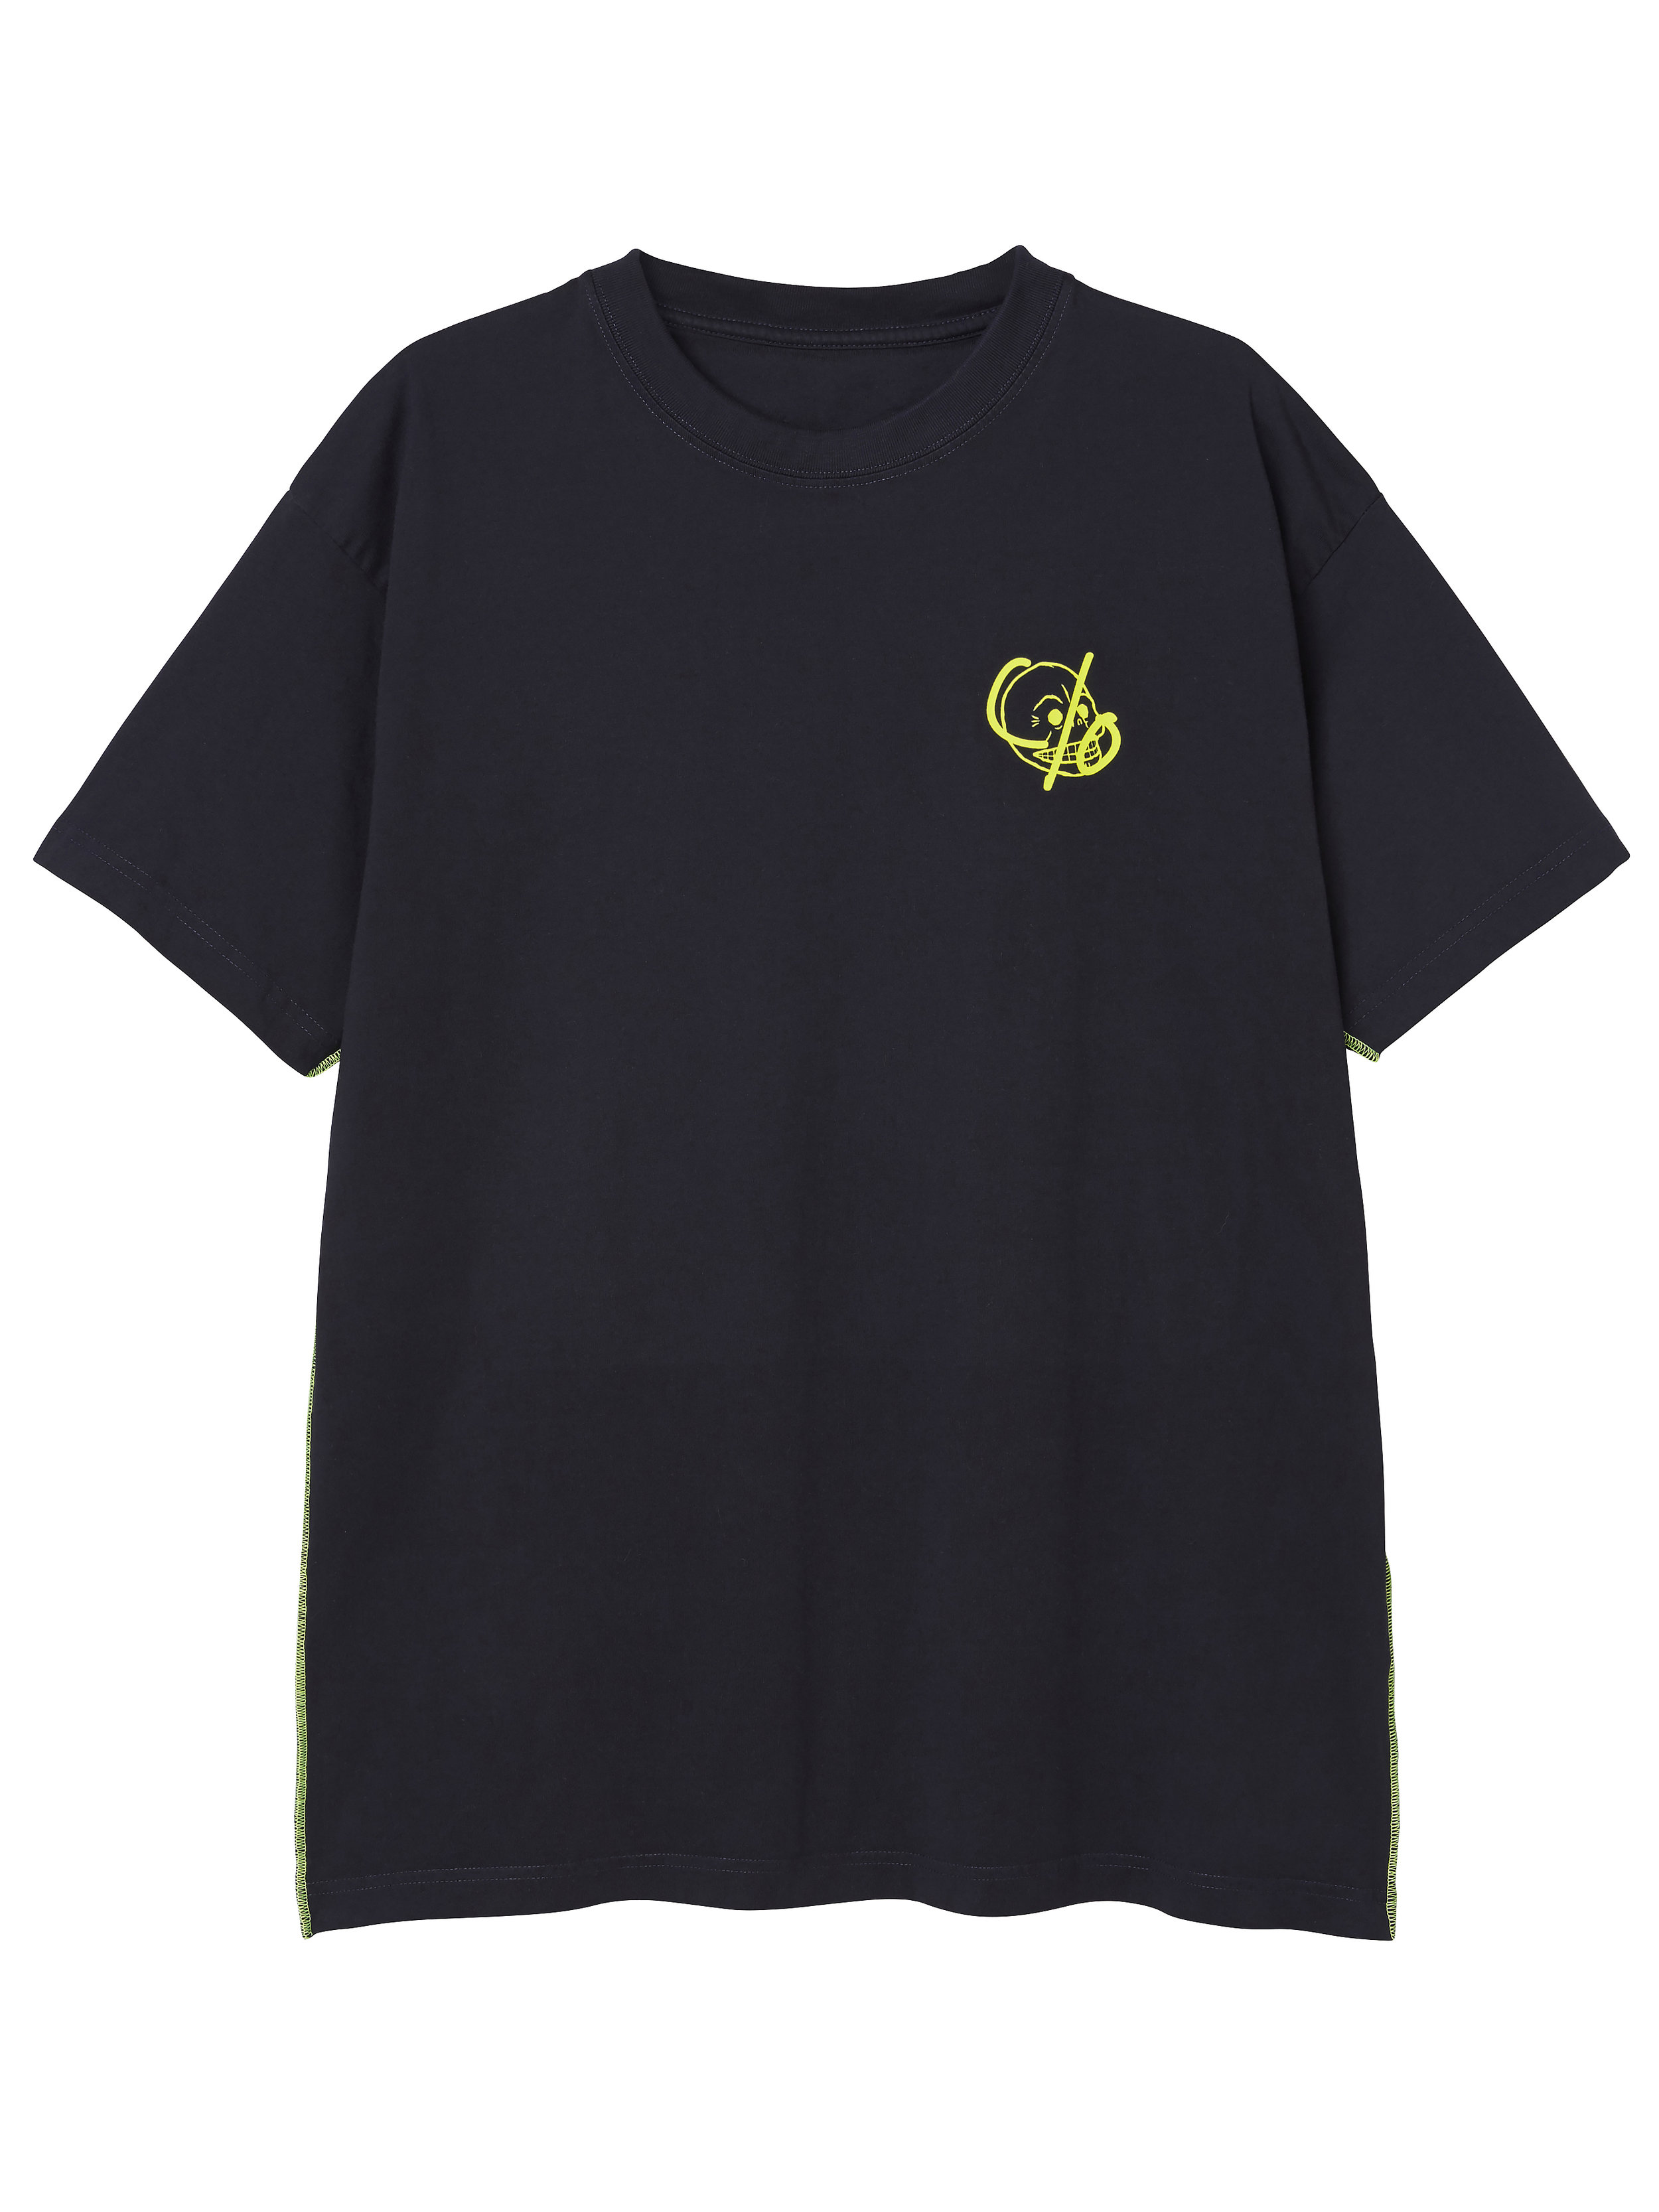 0643912_RESCUED_T-SHIRT_Overdyed_black.jpg